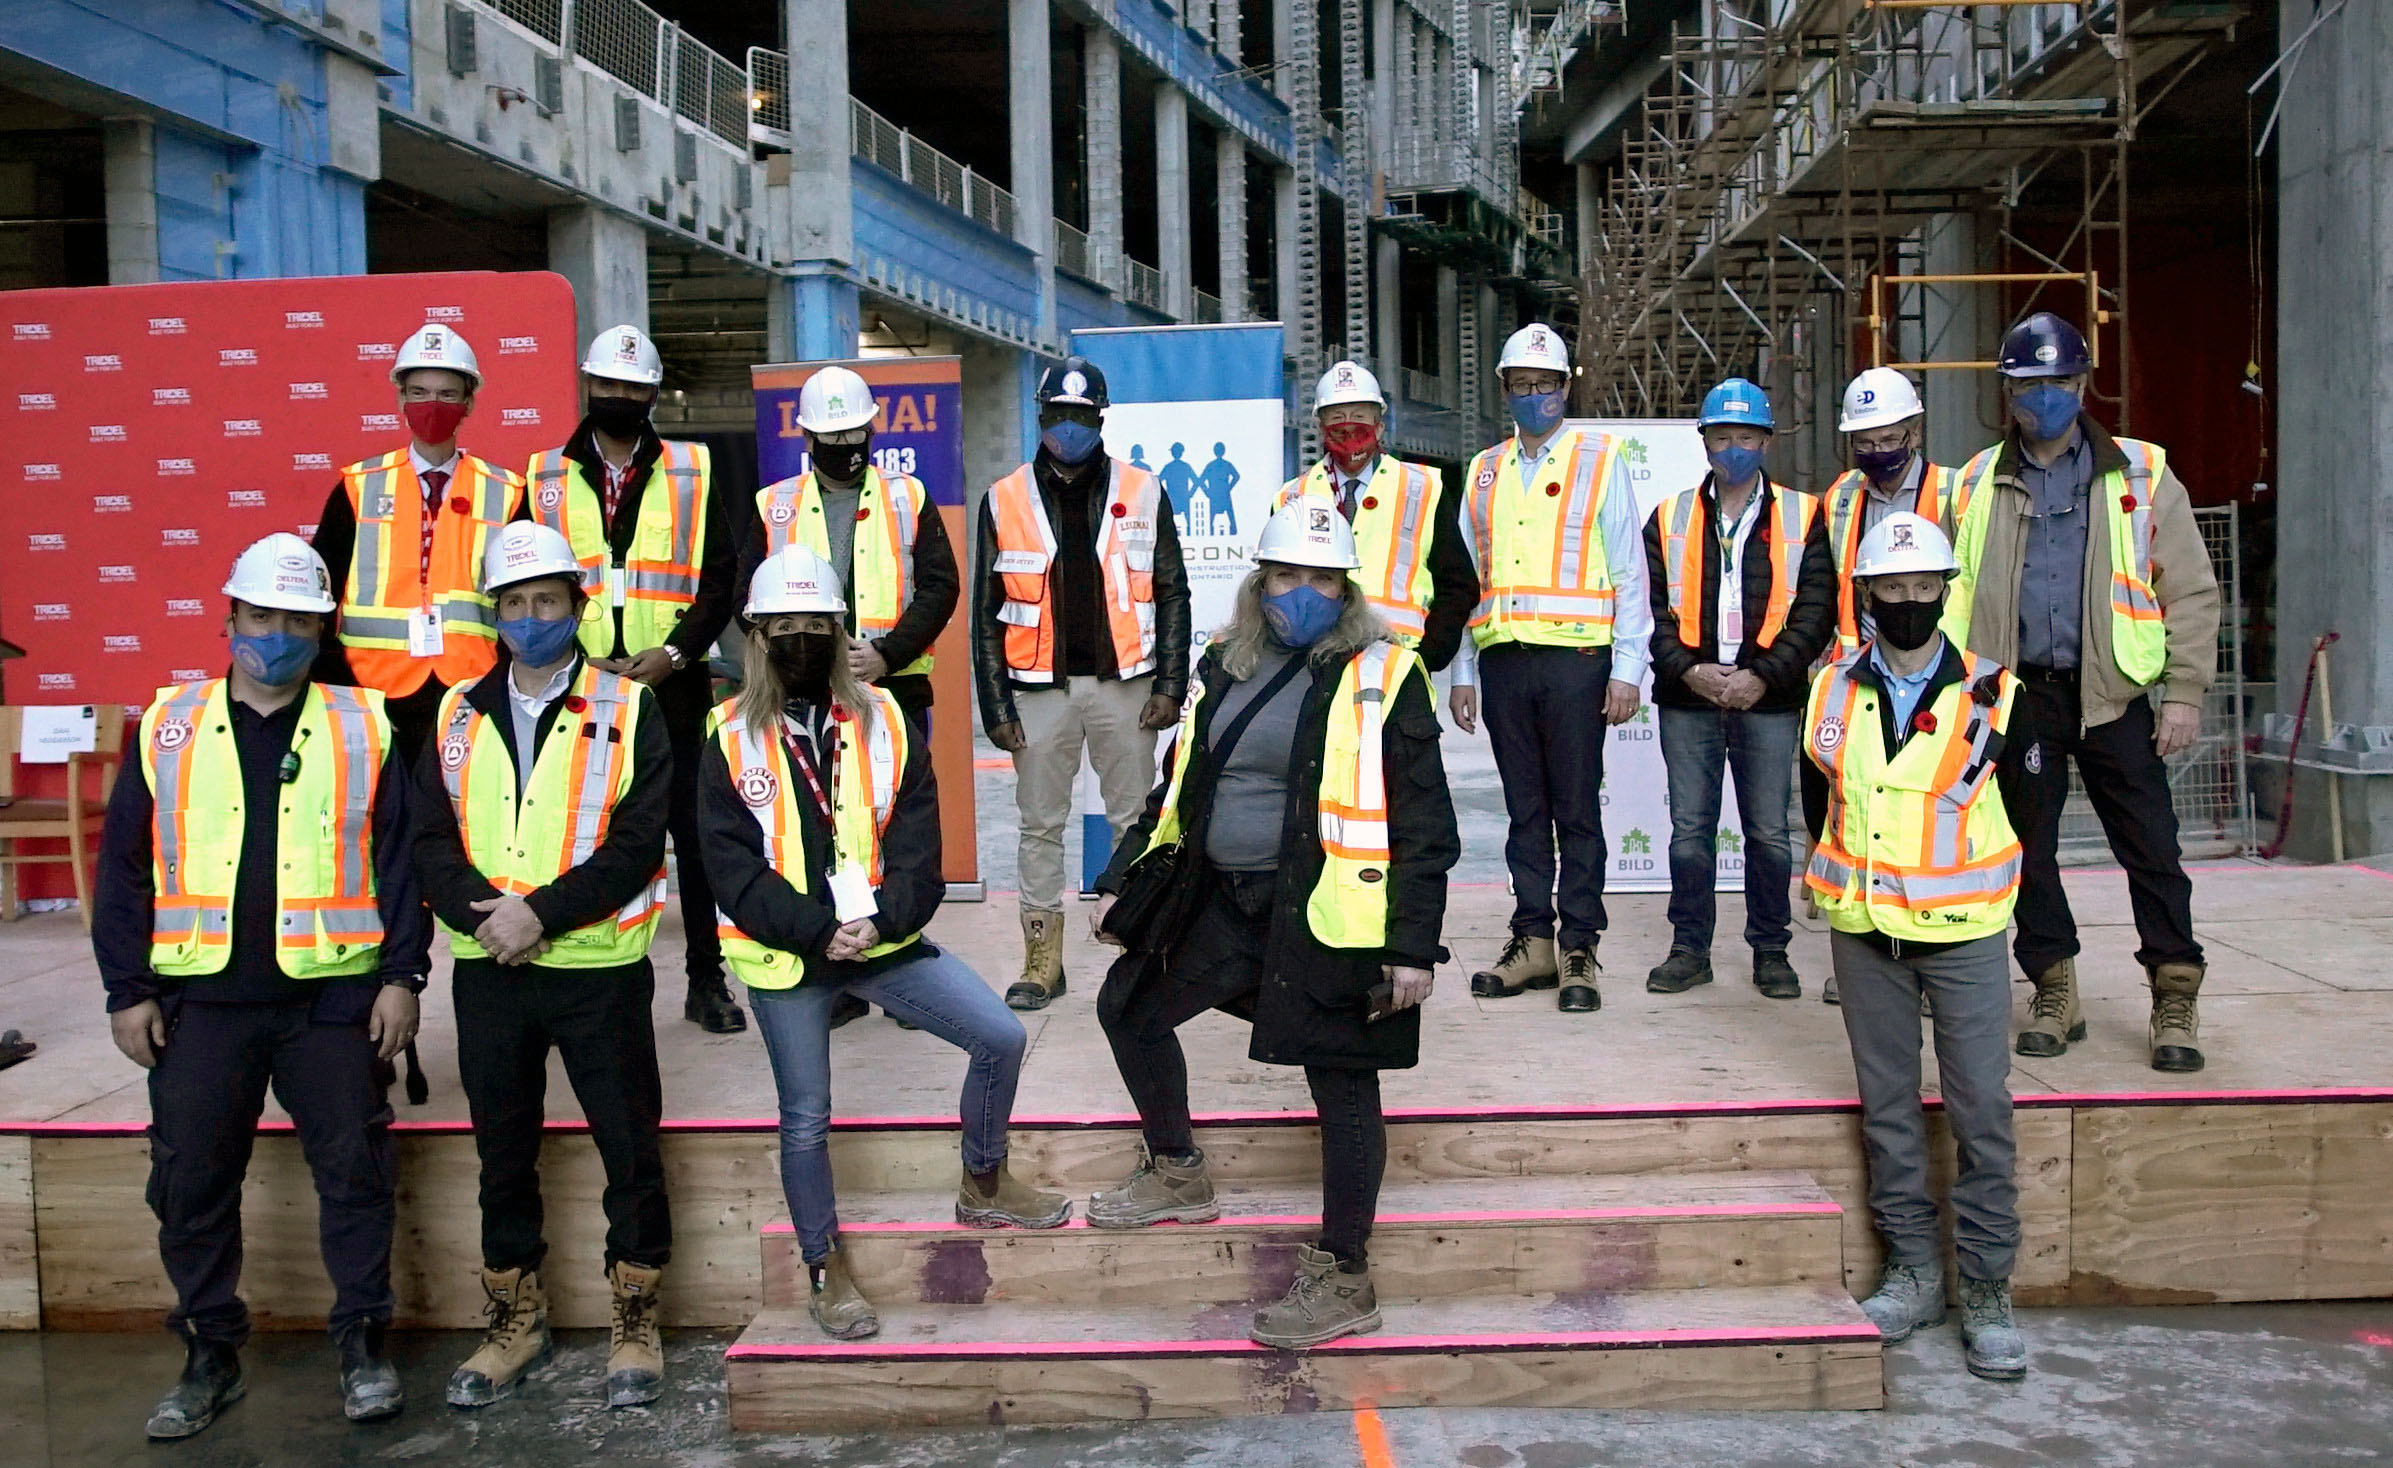 Tridel kicked off the Built for Respect campaign in partnership with EllisDon, the Labourers' International Union of North America Local 183, the Residential Construction Council of Ontario and the Building Industry and Land Development Association, to tackle and eliminate racism within the construction industry